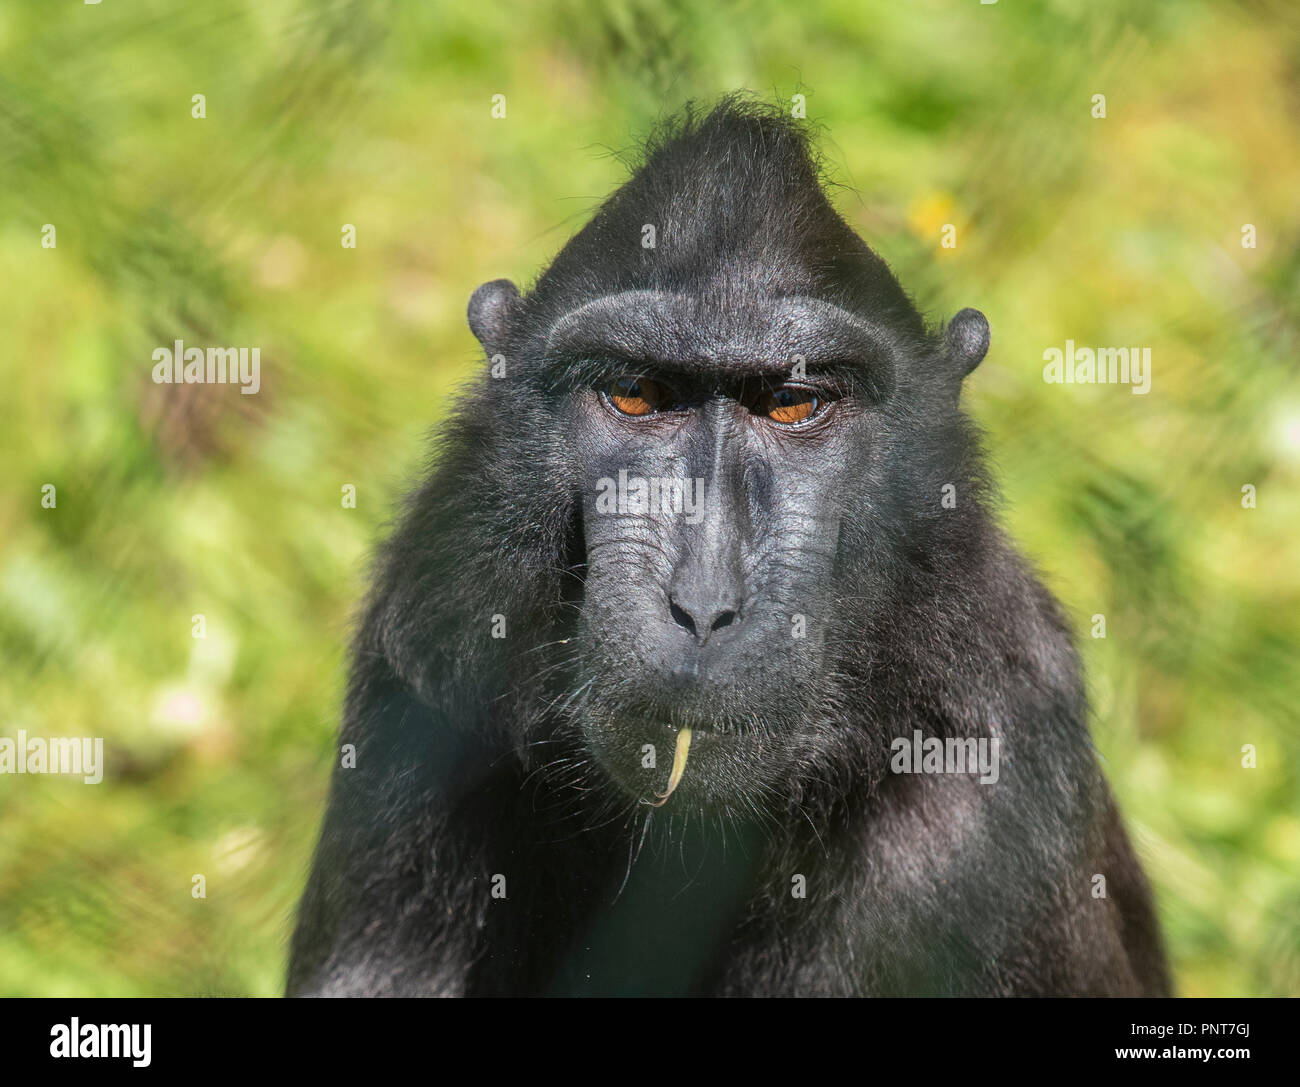 Random Photographs of Animals mostly in captivity captured in Paignton Zoo ,Devon. Mainly of Gorillas and Birds. - Stock Image